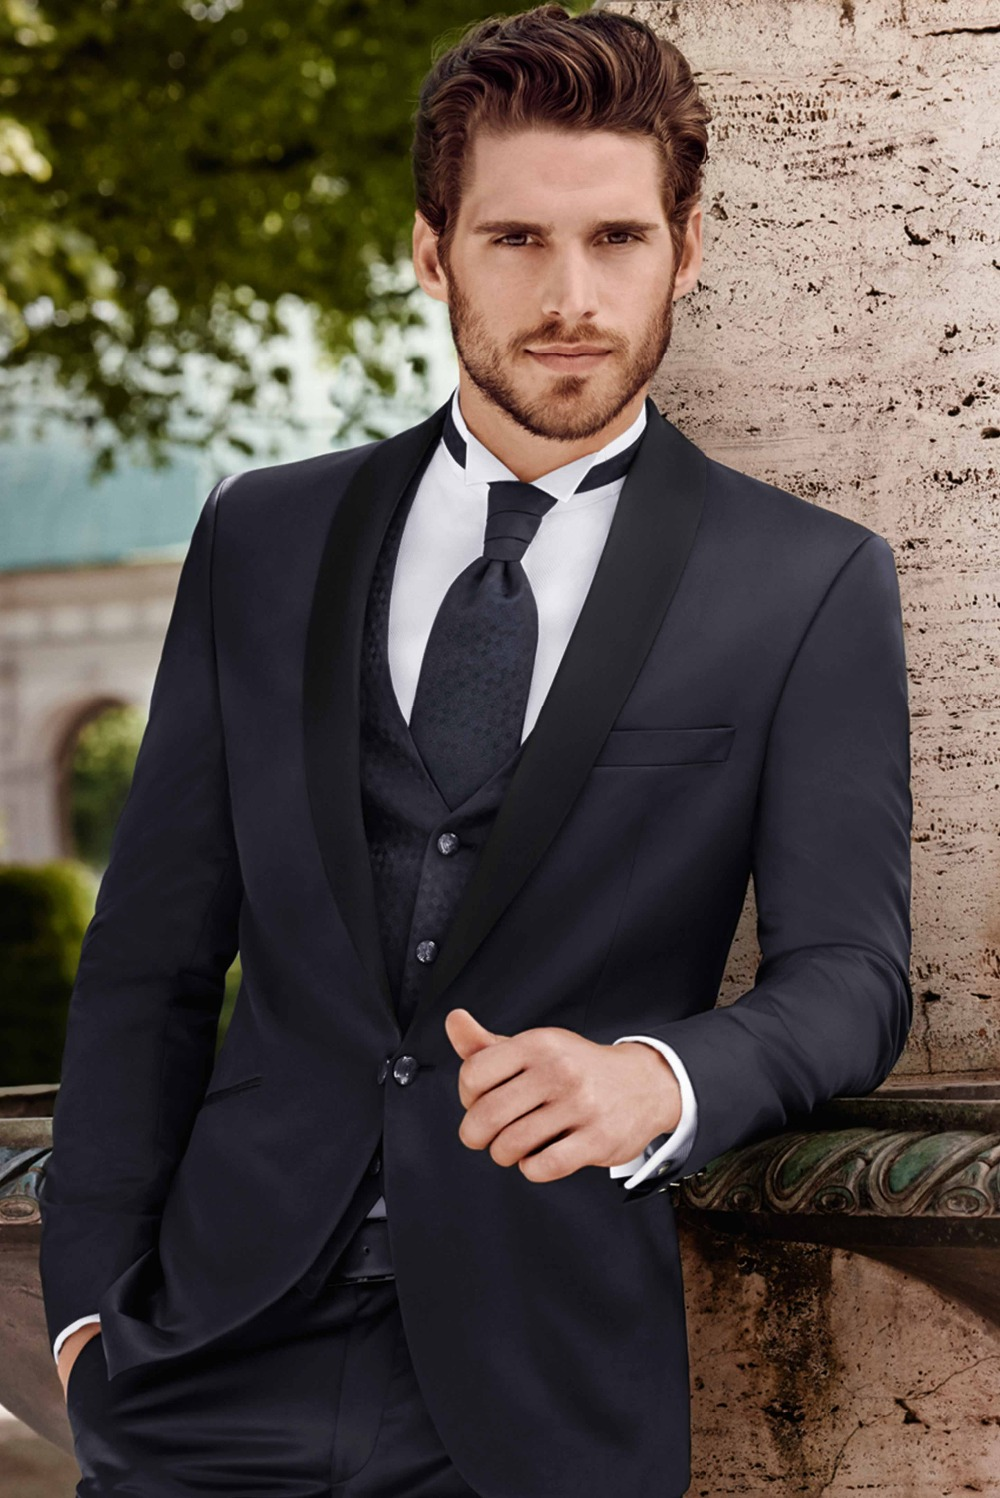 afdf2e0f2 US $91.97 |Tailored Dark Navy Blue Groom Tuxedos Black Shawl Lapel Mens  Wedding Prom Dinner Suits Slim Fit Italian Styles Suit Jacket+Pants-in  Suits ...